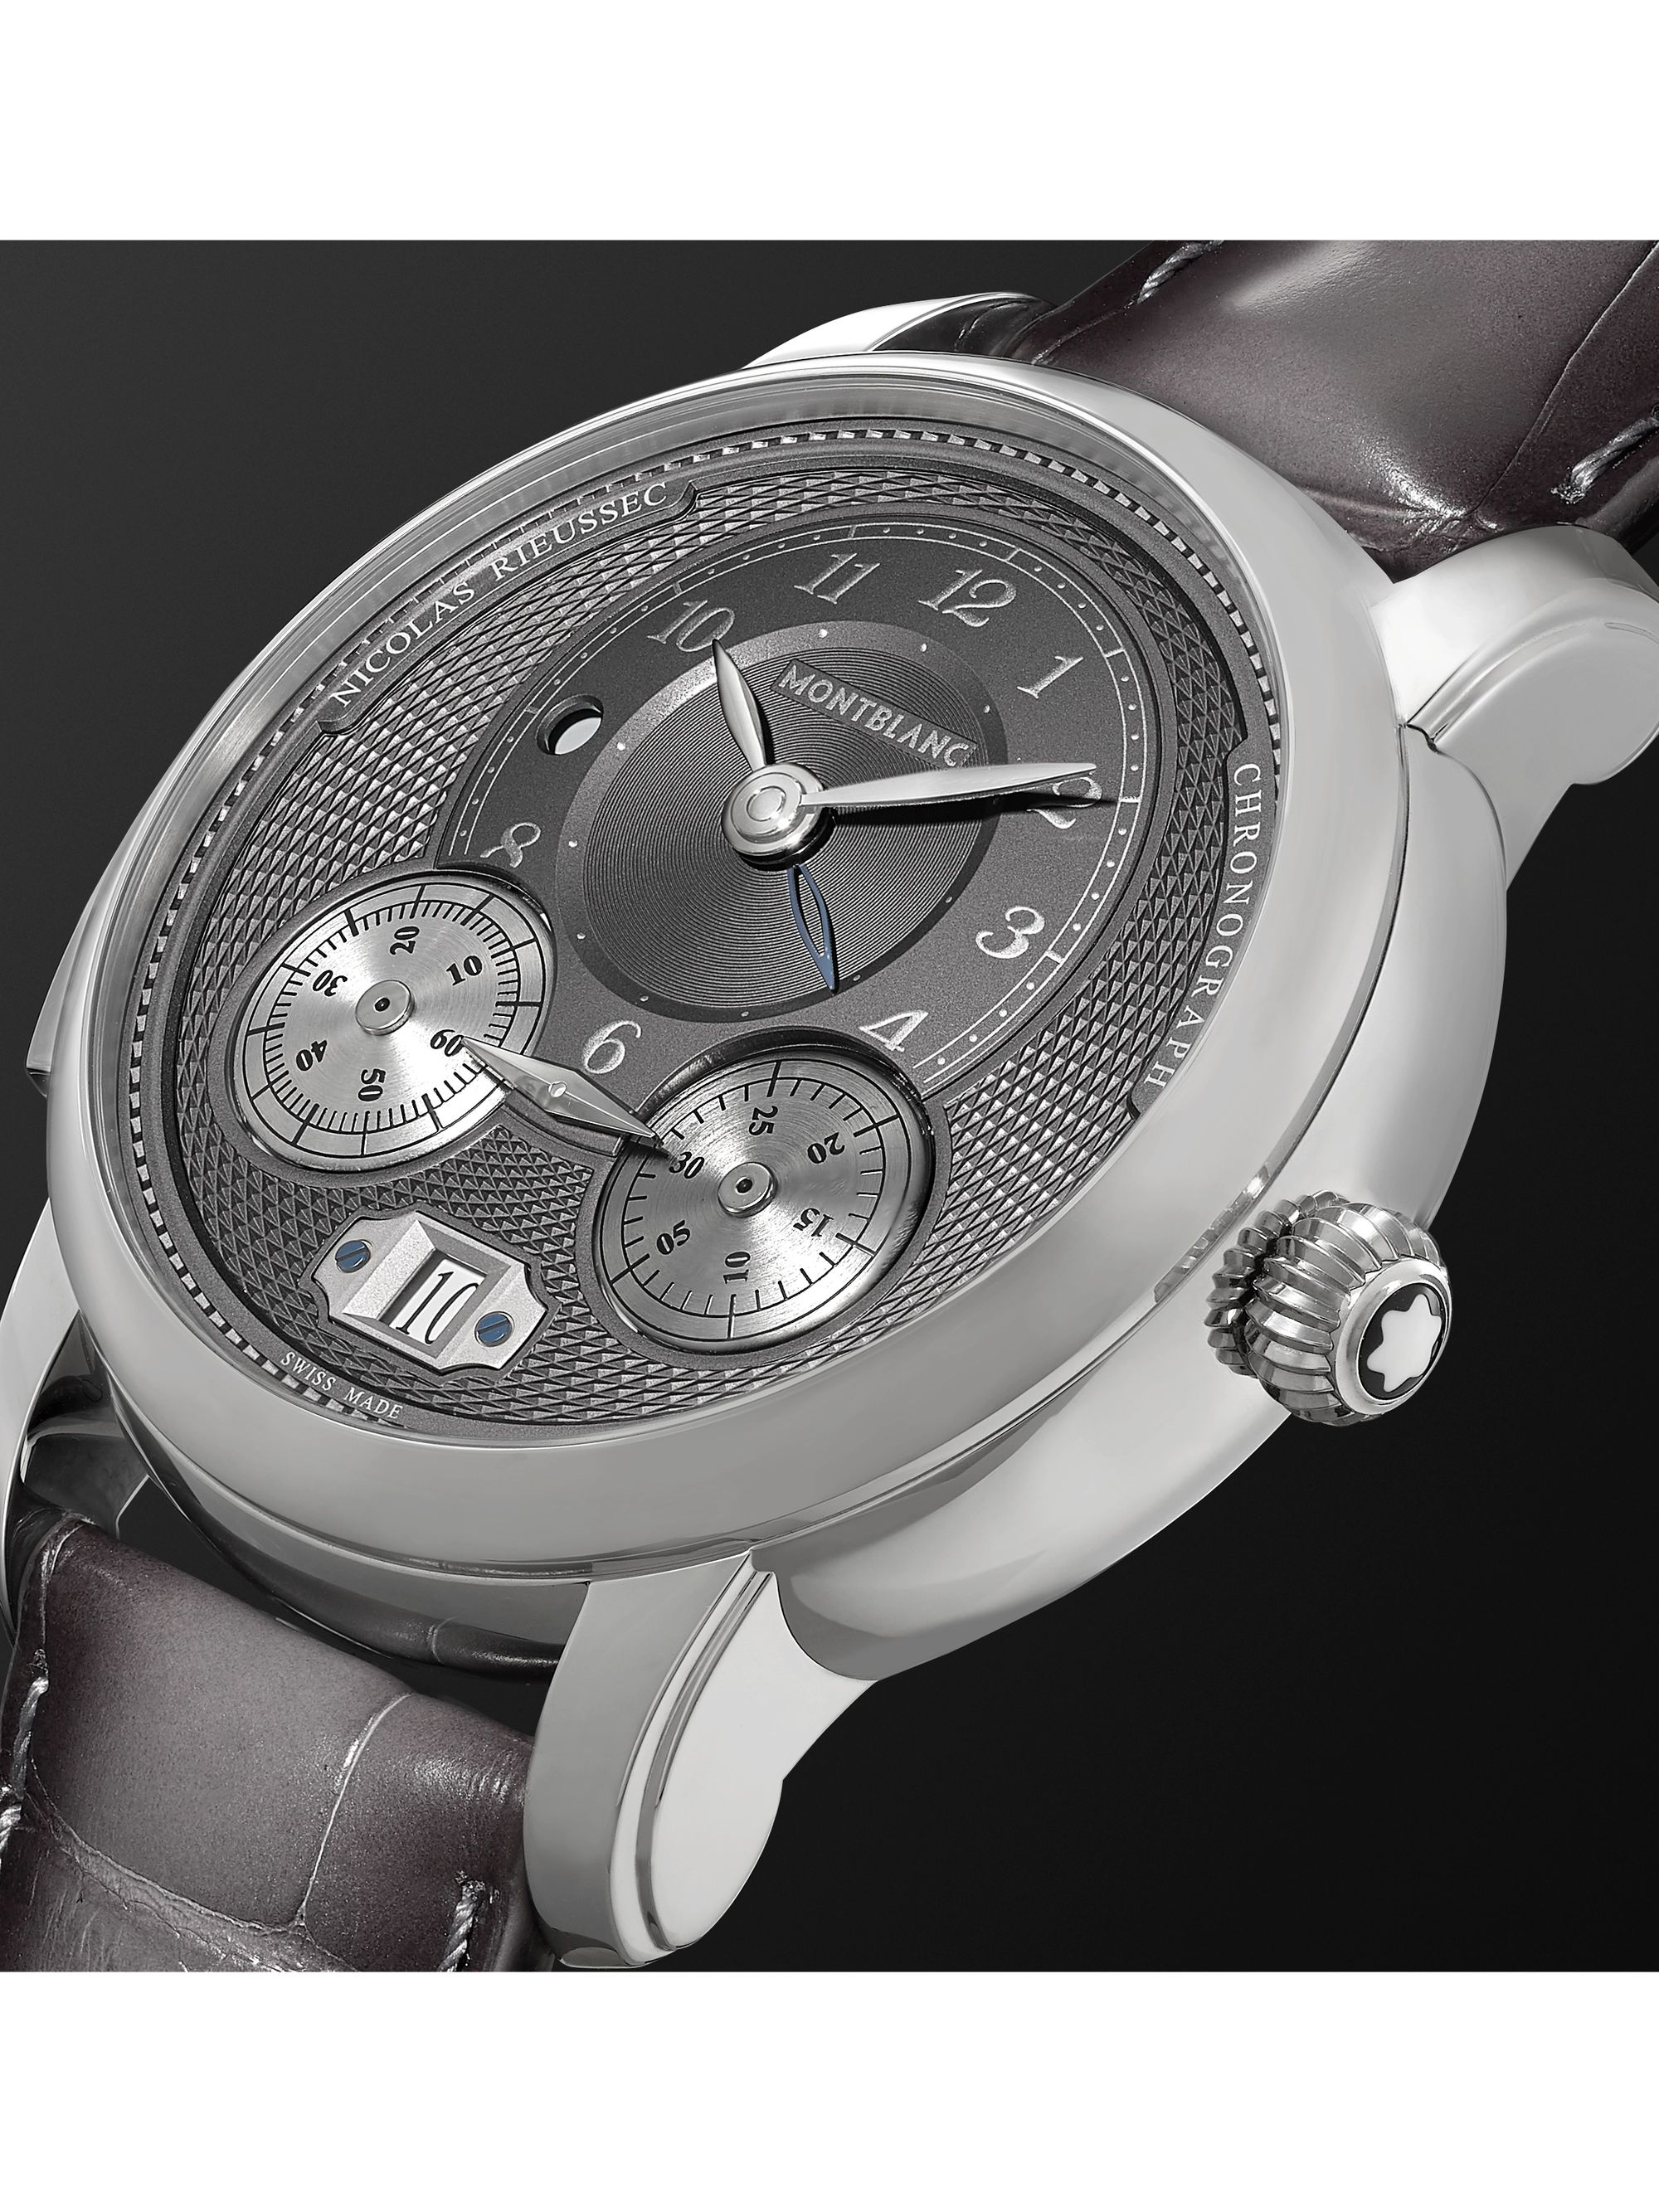 Montblanc Star Legacy Nicolas Rieussec Automatic Chronograph 44mm Stainless Steel and Alligator Watch, Ref. No. 119954